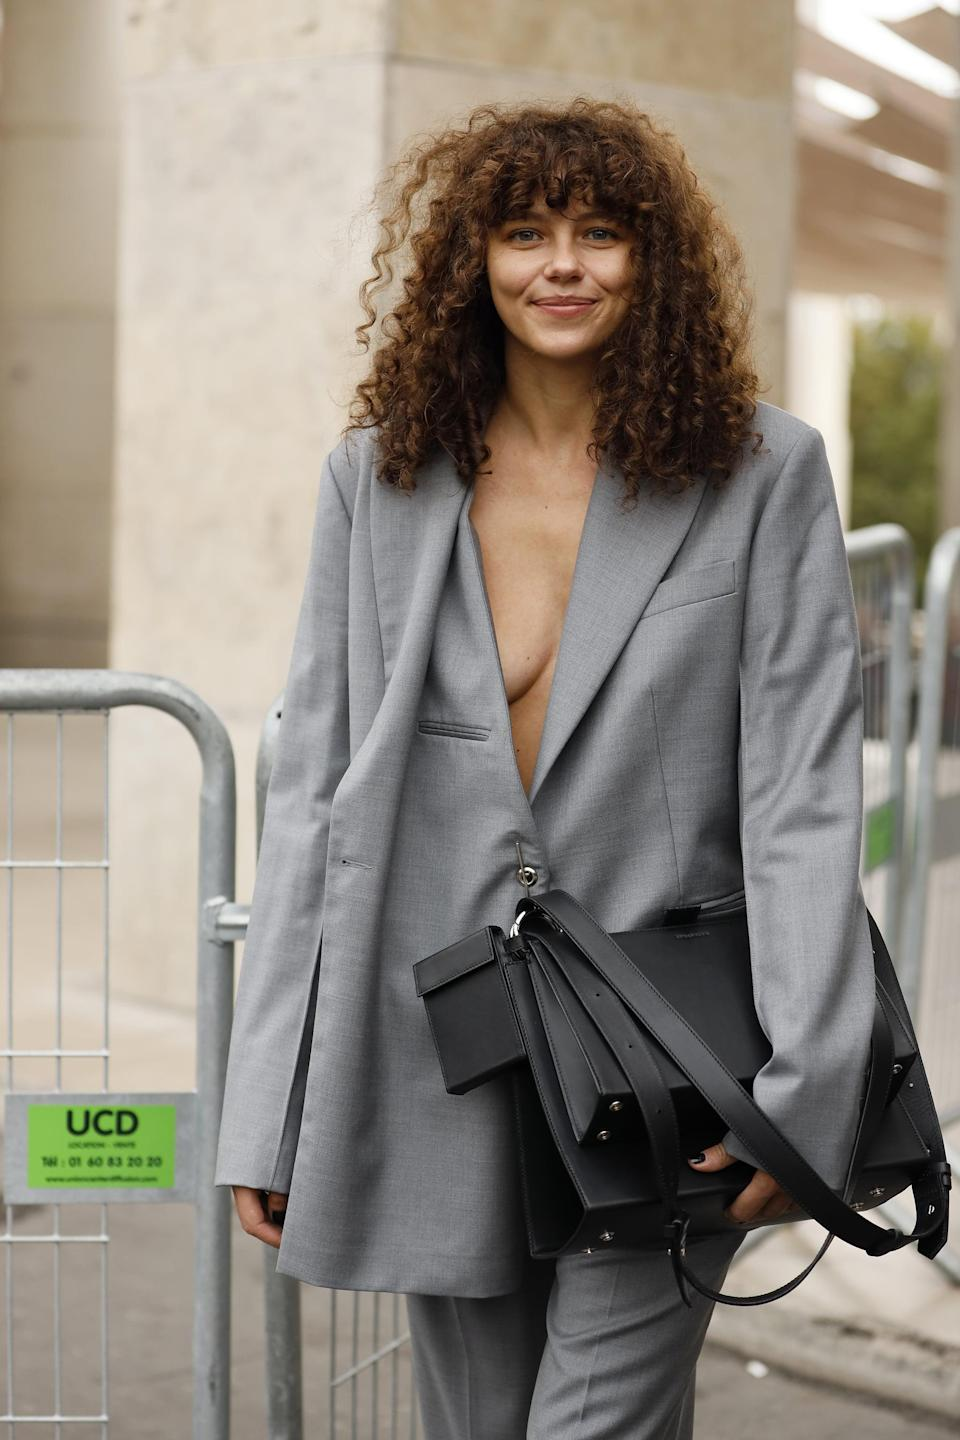 <p>Bangs look great on <em>any</em> hair type - and this is especially true with curls. The only difference is how your stylist cuts them. No matter your curl pattern, most hairstylists will leave the hair a little longer across the forehead to account for any shrinkage.</p>